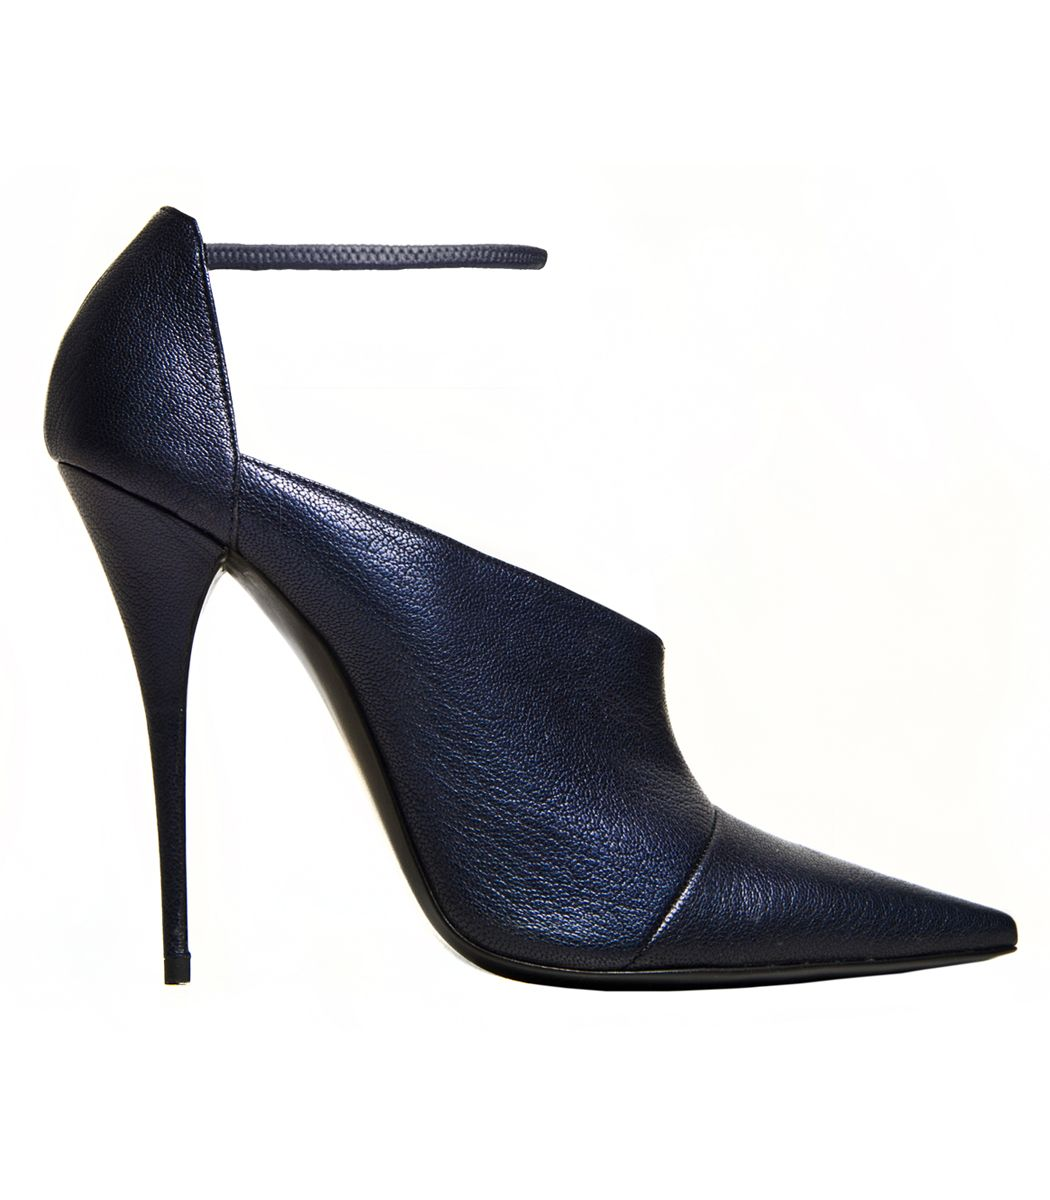 Narciso Rodriguez Ankle Strap Pointed-Toe Pumps order z7a44hx